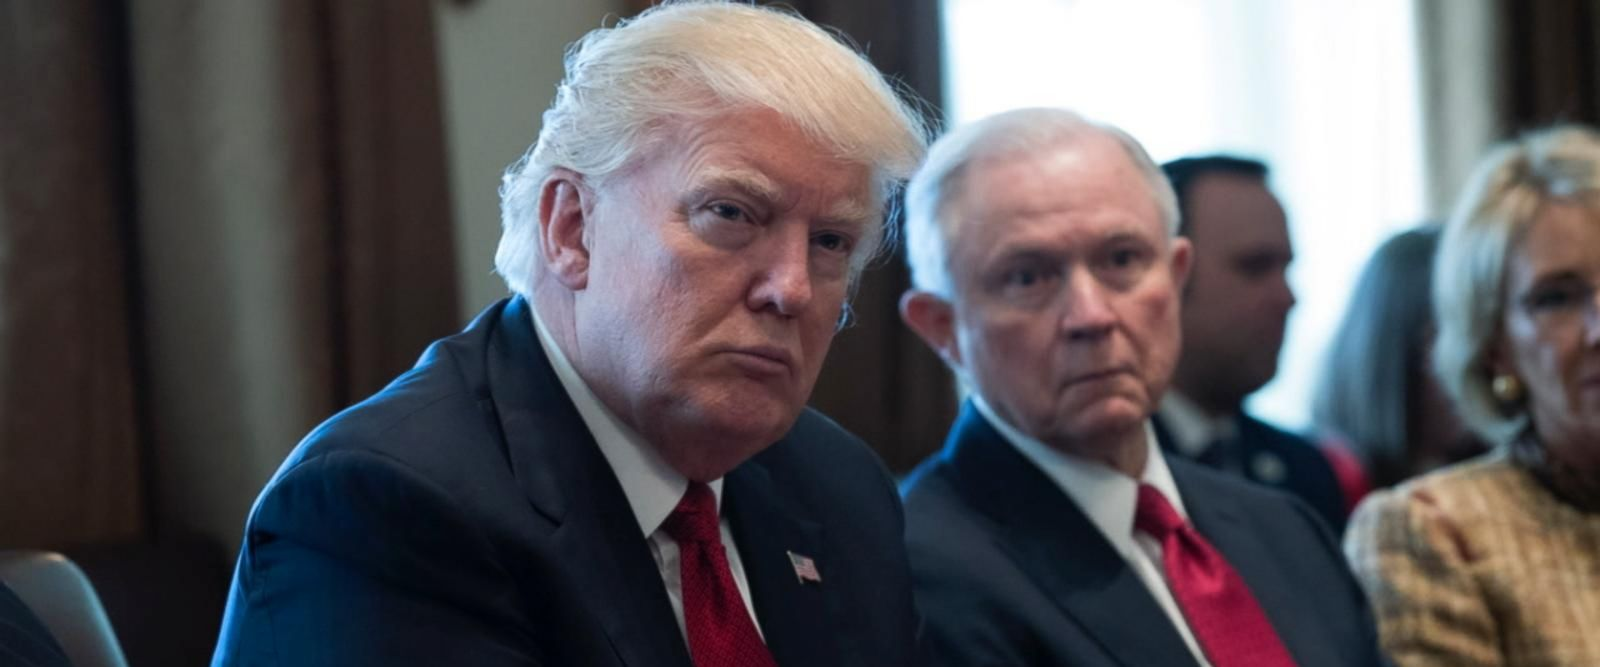 VIDEO: Special counsel seeking interview with Trump: Sources